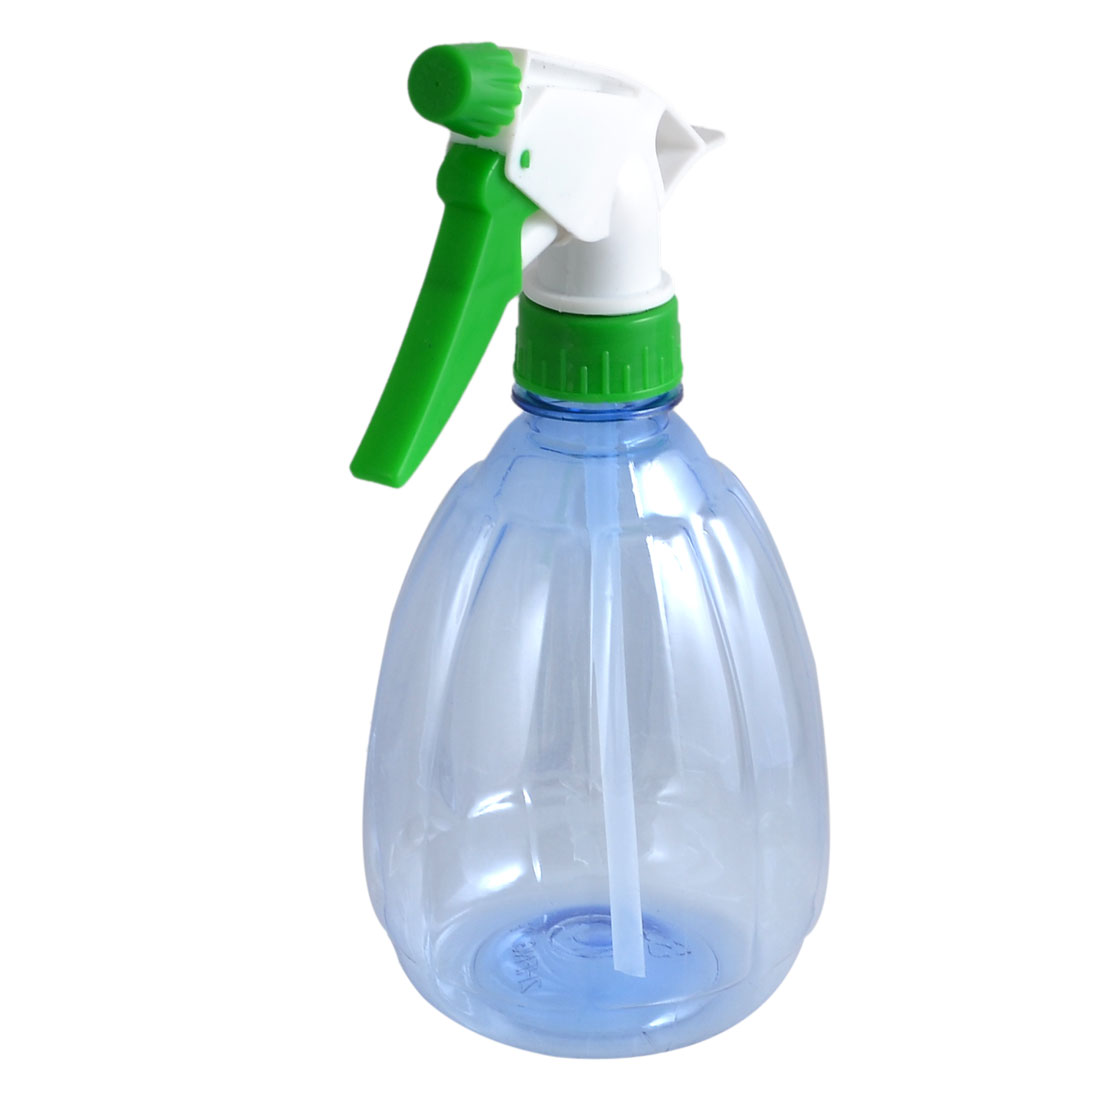 Tear Drop Shape Three Color Plastic Flowers Plants Water Sprayer 520ml